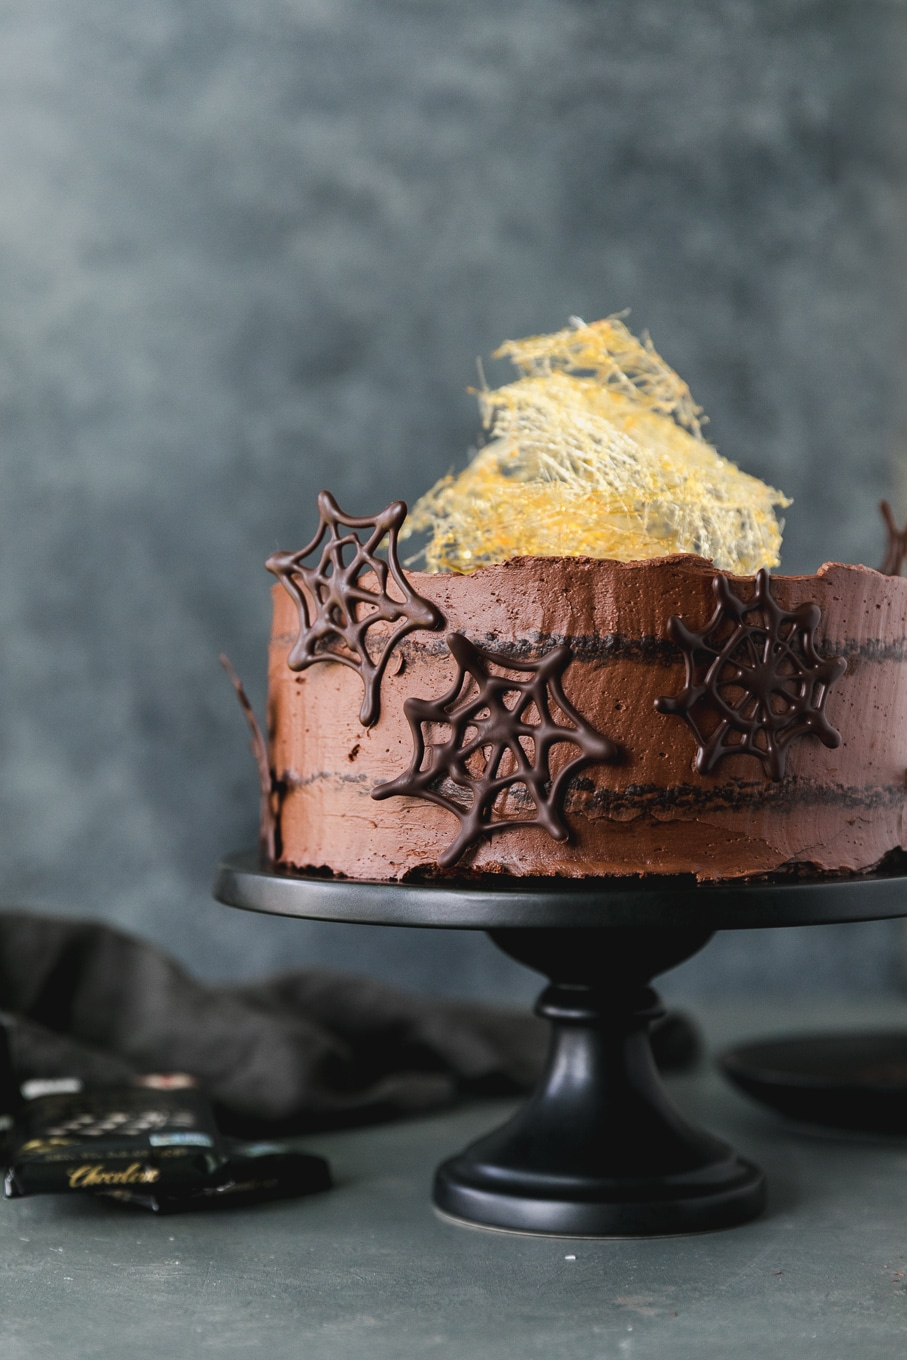 Forward facing shot of a chocolate cake with dark chocolate spider webs on it and a spun sugar cobweb on top on a black cake stand